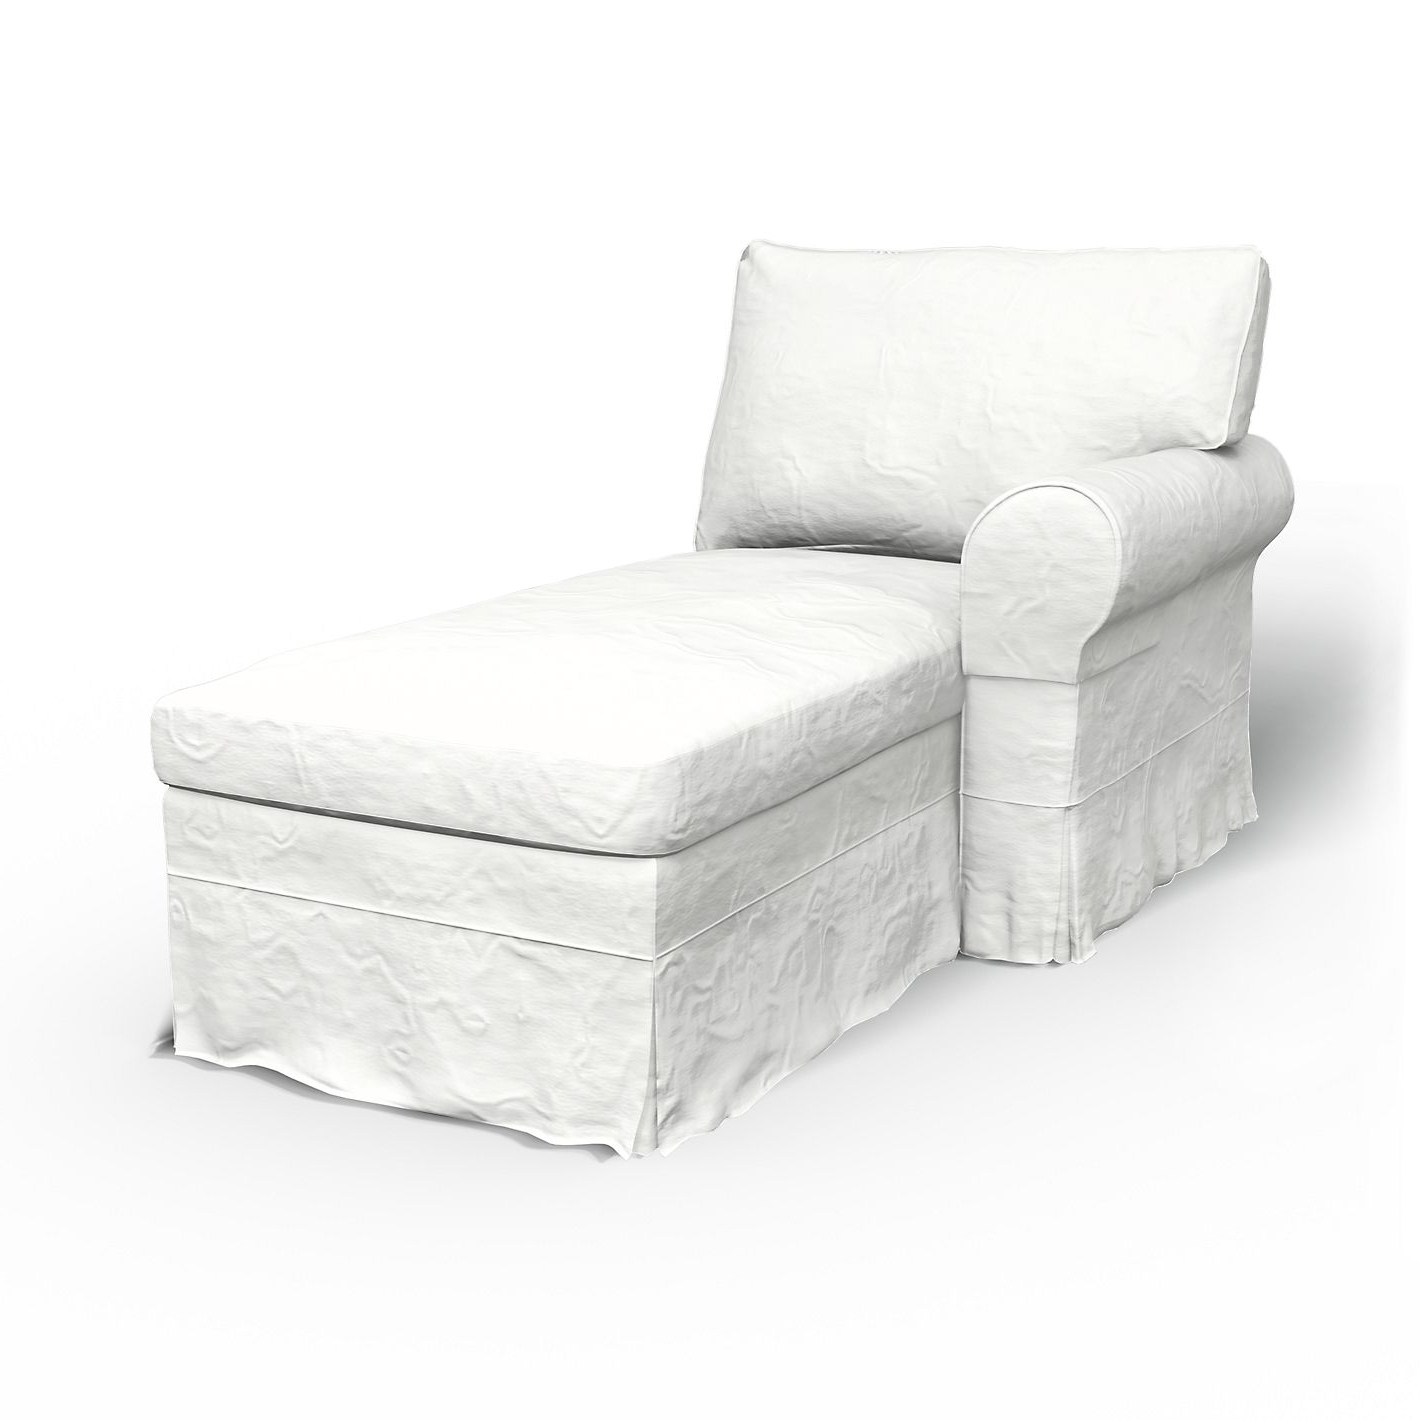 Covers For Chaise Lounge Chair Regarding Most Popular Cover For Chaise Lounge Chair • Lounge Chairs Ideas (View 6 of 15)